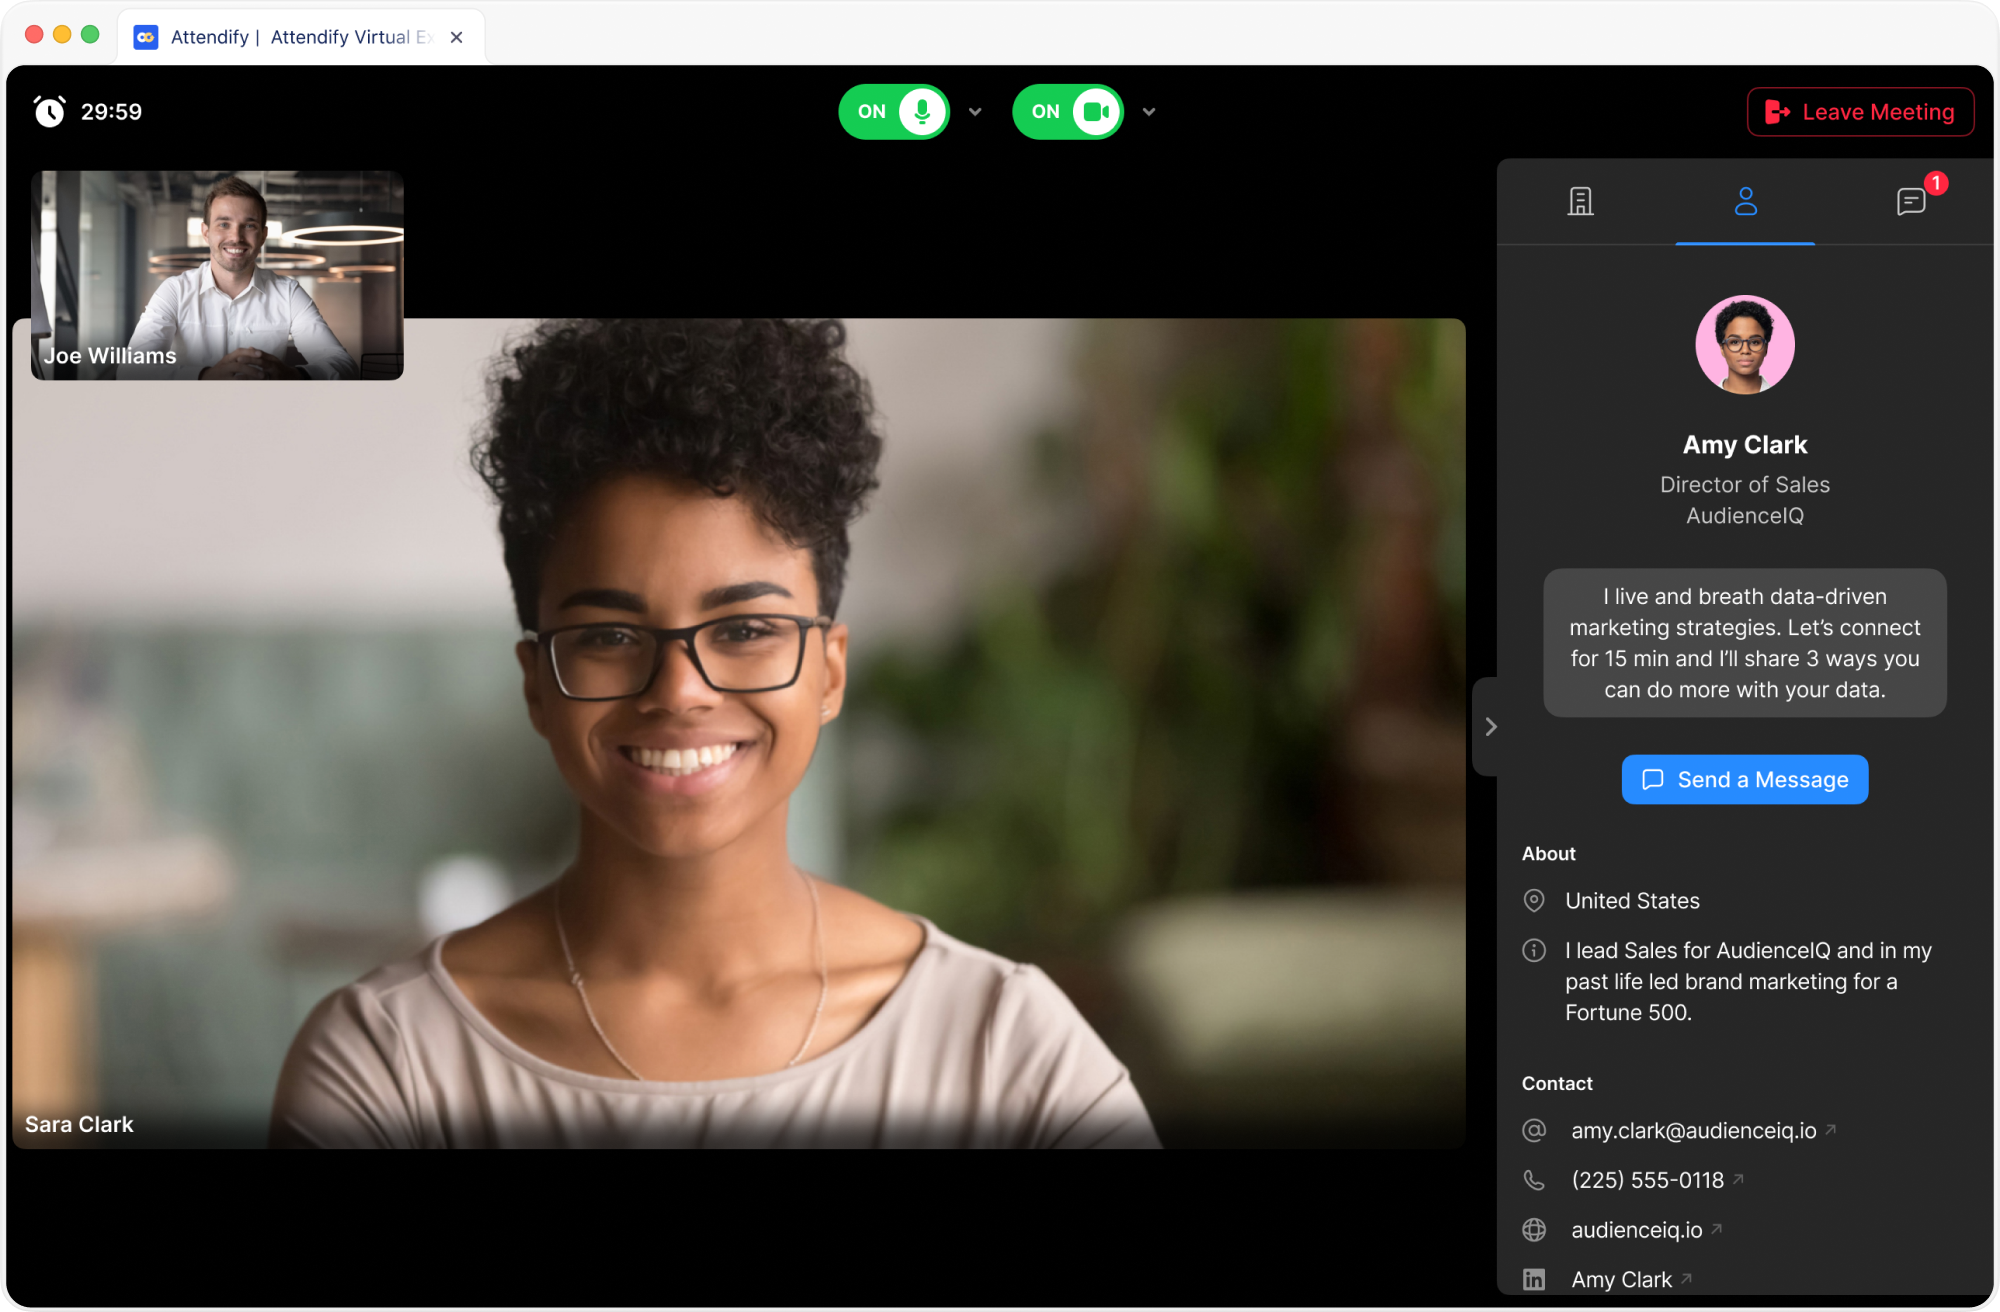 Attendify's real-time, live video meetings for event sponsorships